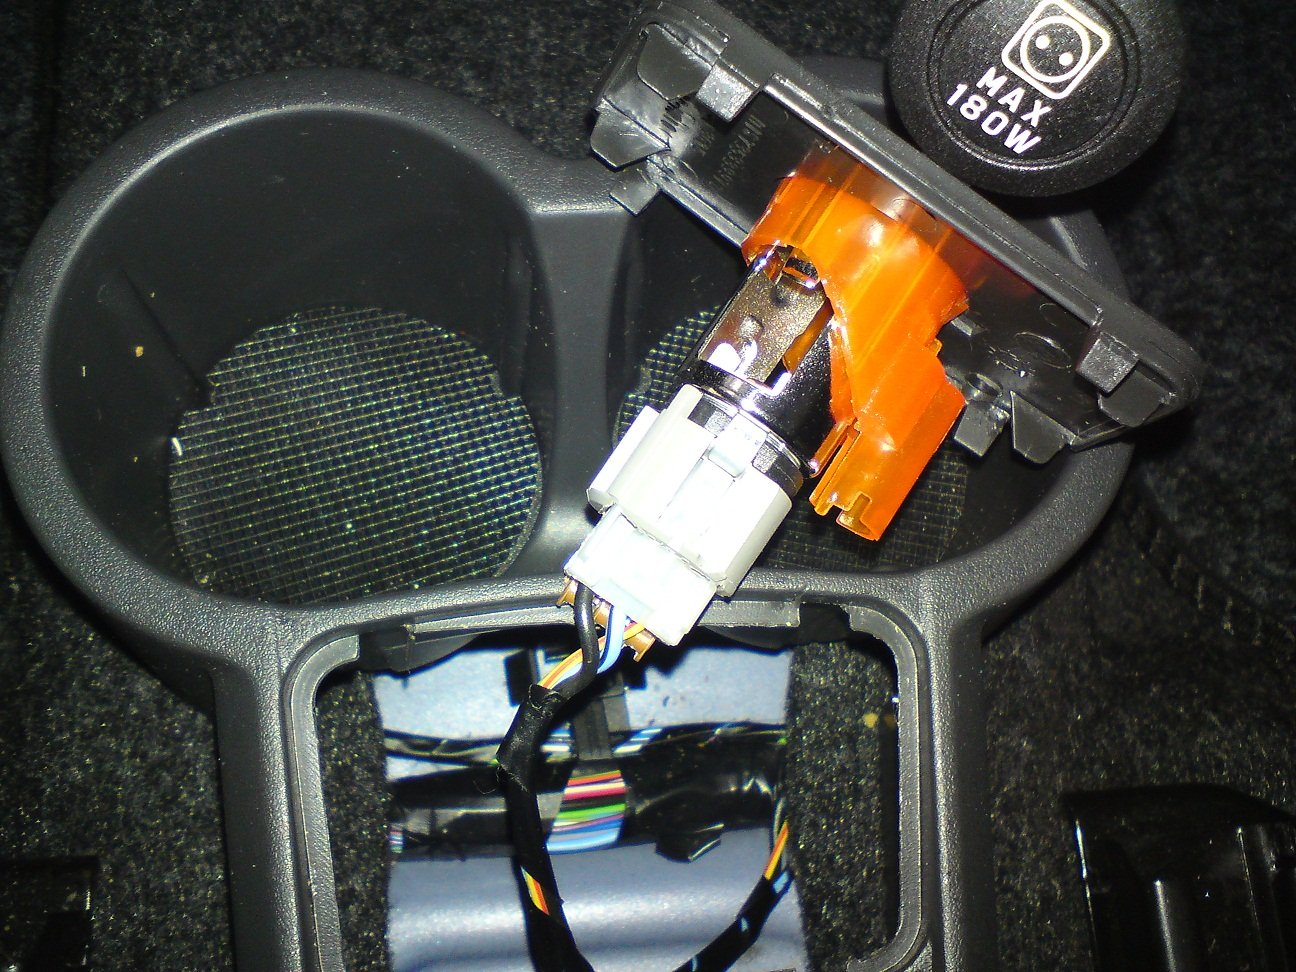 The Poorest Company Installing A 12v Power Socket In Fiat Panda Cigarette Lighter Wiring On Plug Connect Loom Connector To And Test With Suitable Appliance Sat Nav Remember Only Has While Ignition Is